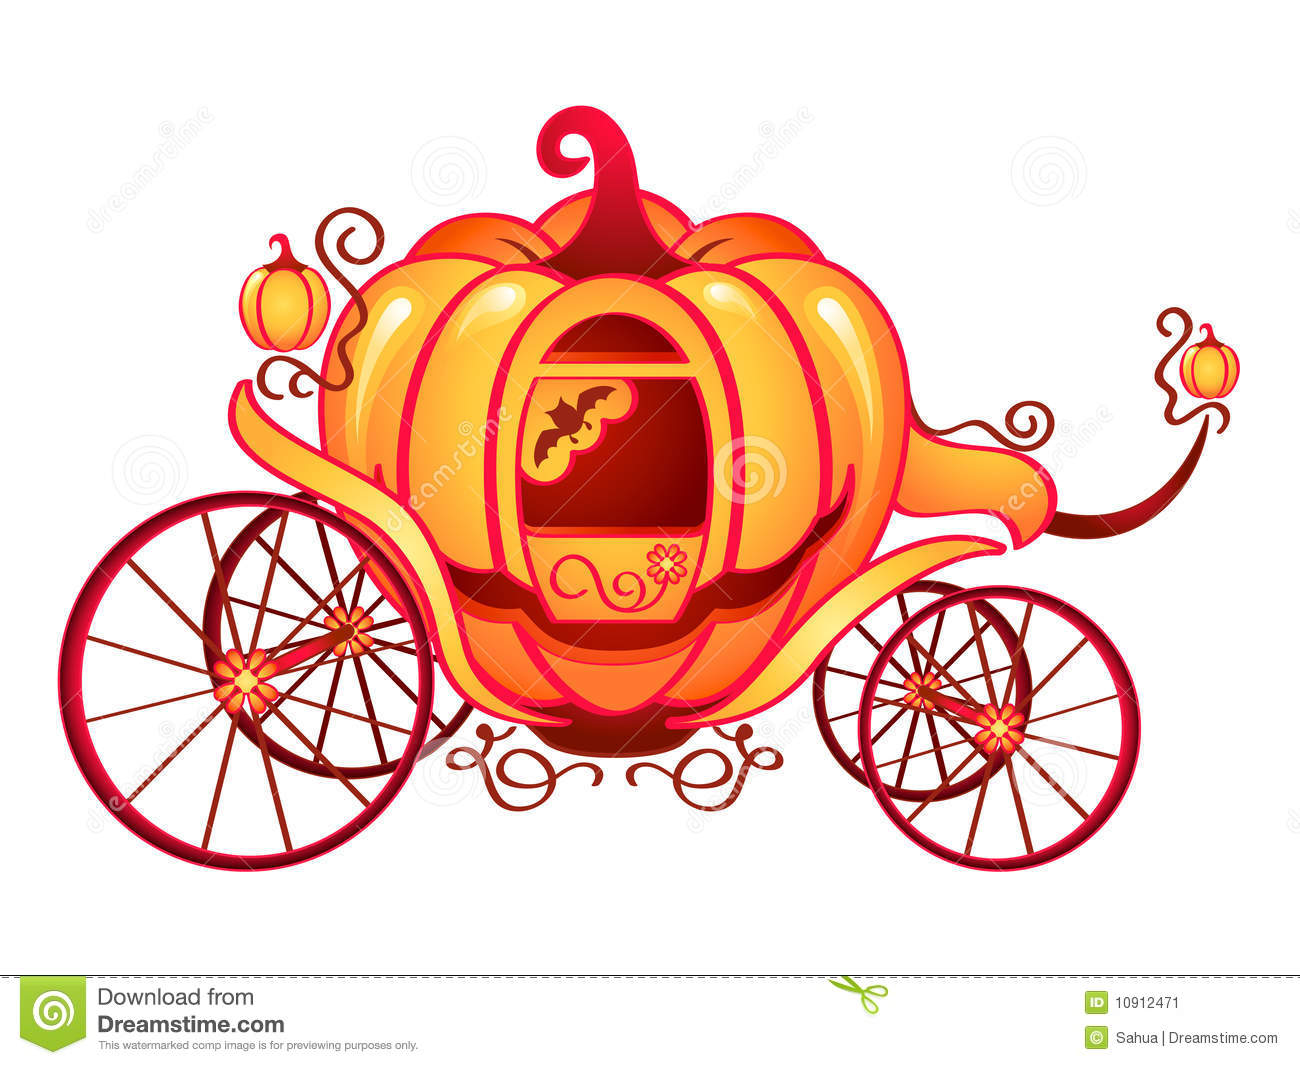 th?id=OIP.1hVzgZ99OloMFh7bhxUfIAEsD1&pid=15.1 furthermore cinderella pumpkin coach coloring pages 1 on cinderella pumpkin coach coloring pages as well as cinderella pumpkin coach coloring pages 2 on cinderella pumpkin coach coloring pages including cinderella pumpkin coach coloring pages 3 on cinderella pumpkin coach coloring pages moreover cinderella pumpkin carriage drawing on cinderella pumpkin coach coloring pages